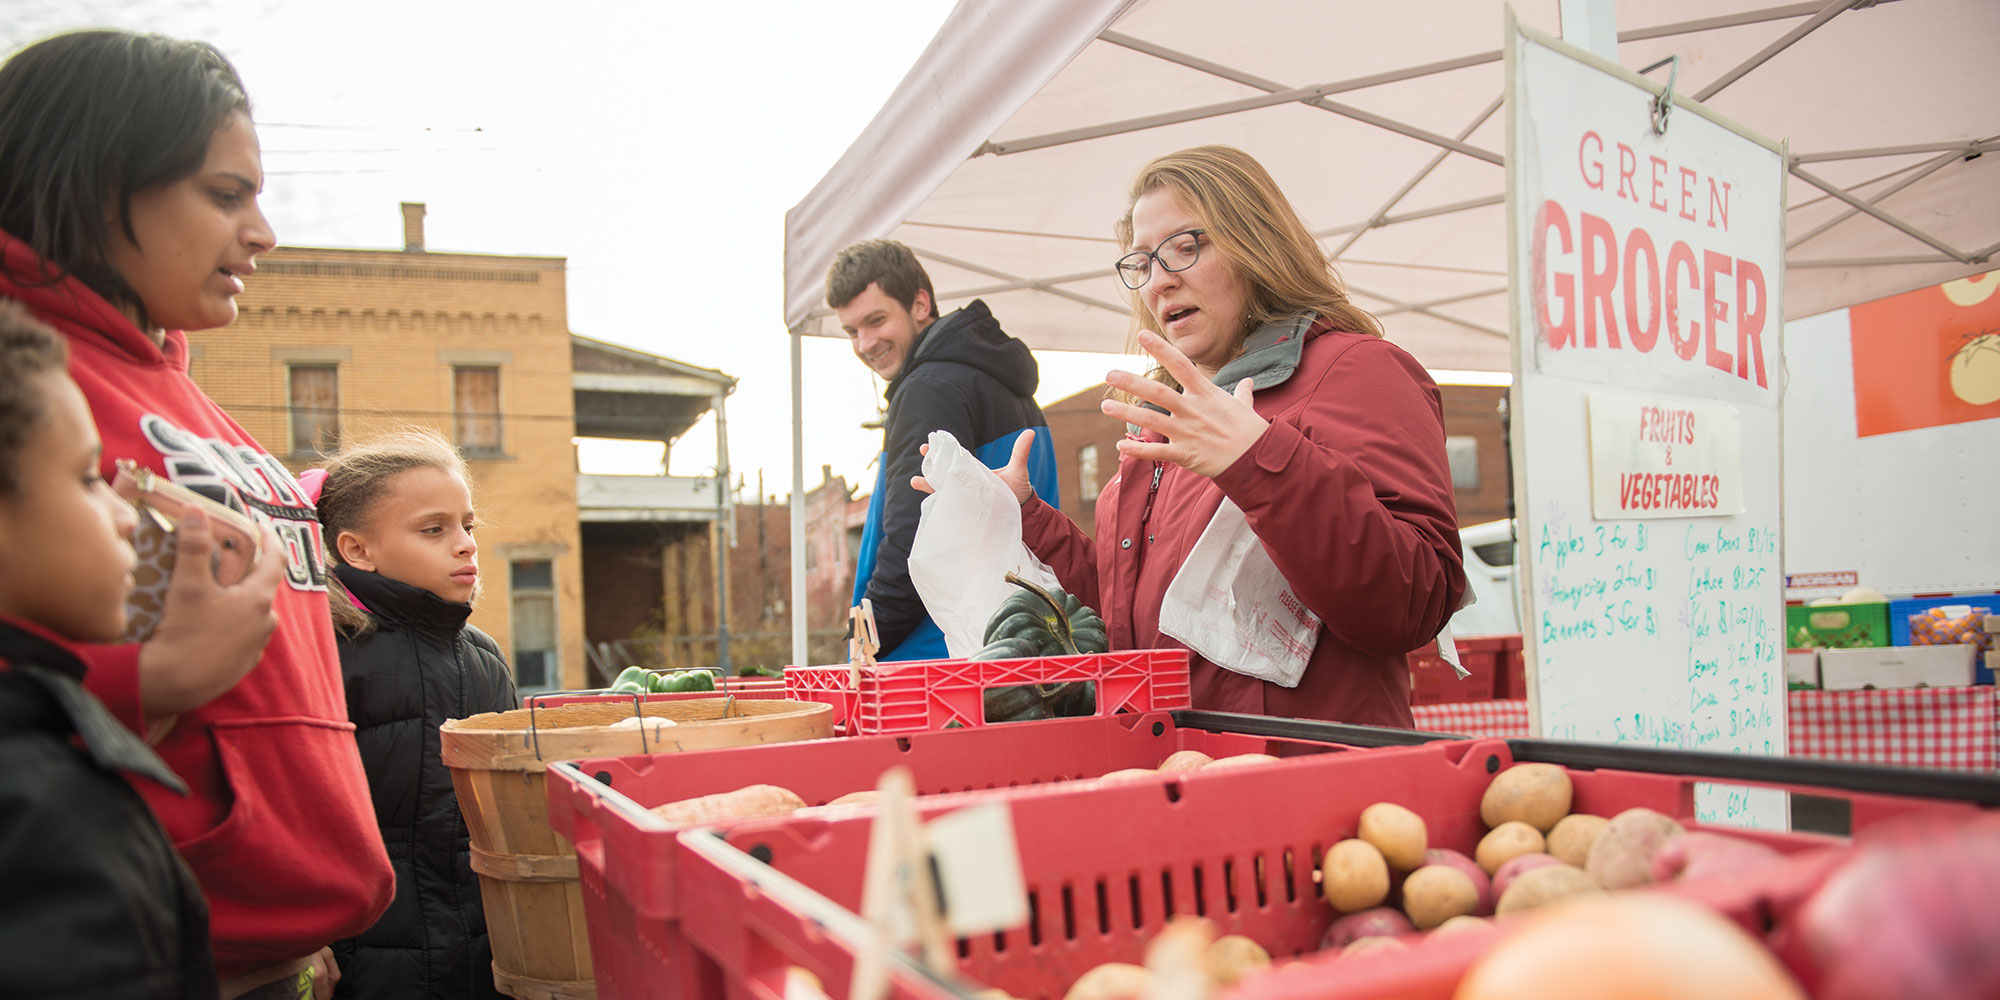 The Green Grocer program, managed by the Greater Pittsburgh Community Food Bank, is a mobile farmers market designed to travel into food desert communities to provide fresh food options.